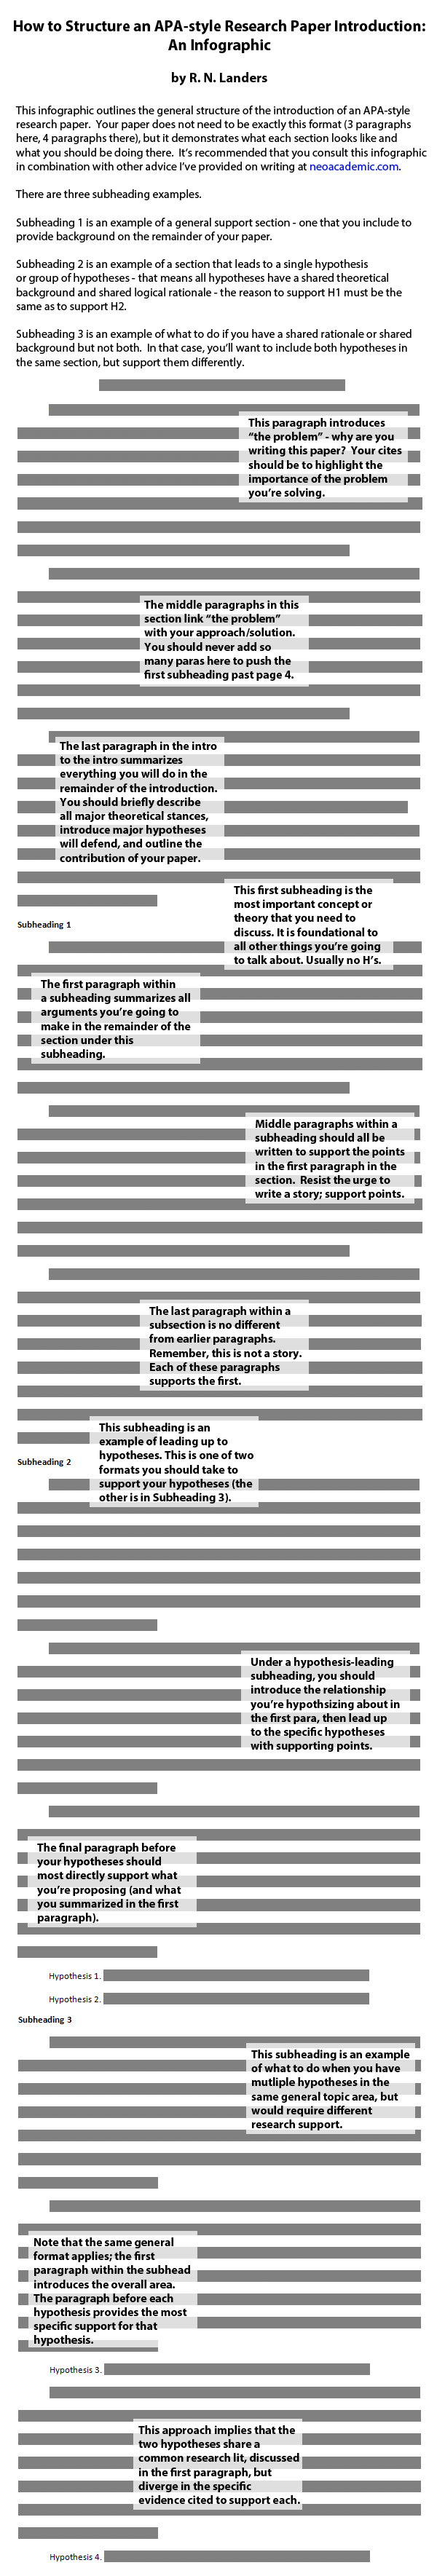 academic style research paper Tips for writing in an academic tone and style from cambridge proofreading how to write in an academic tone and style  blog academic writing tips for writing in an academic tone and style  if you'd like us to proofread and edit your paper to improve academic style and tone, visit our order page it's quick and easy to complete.